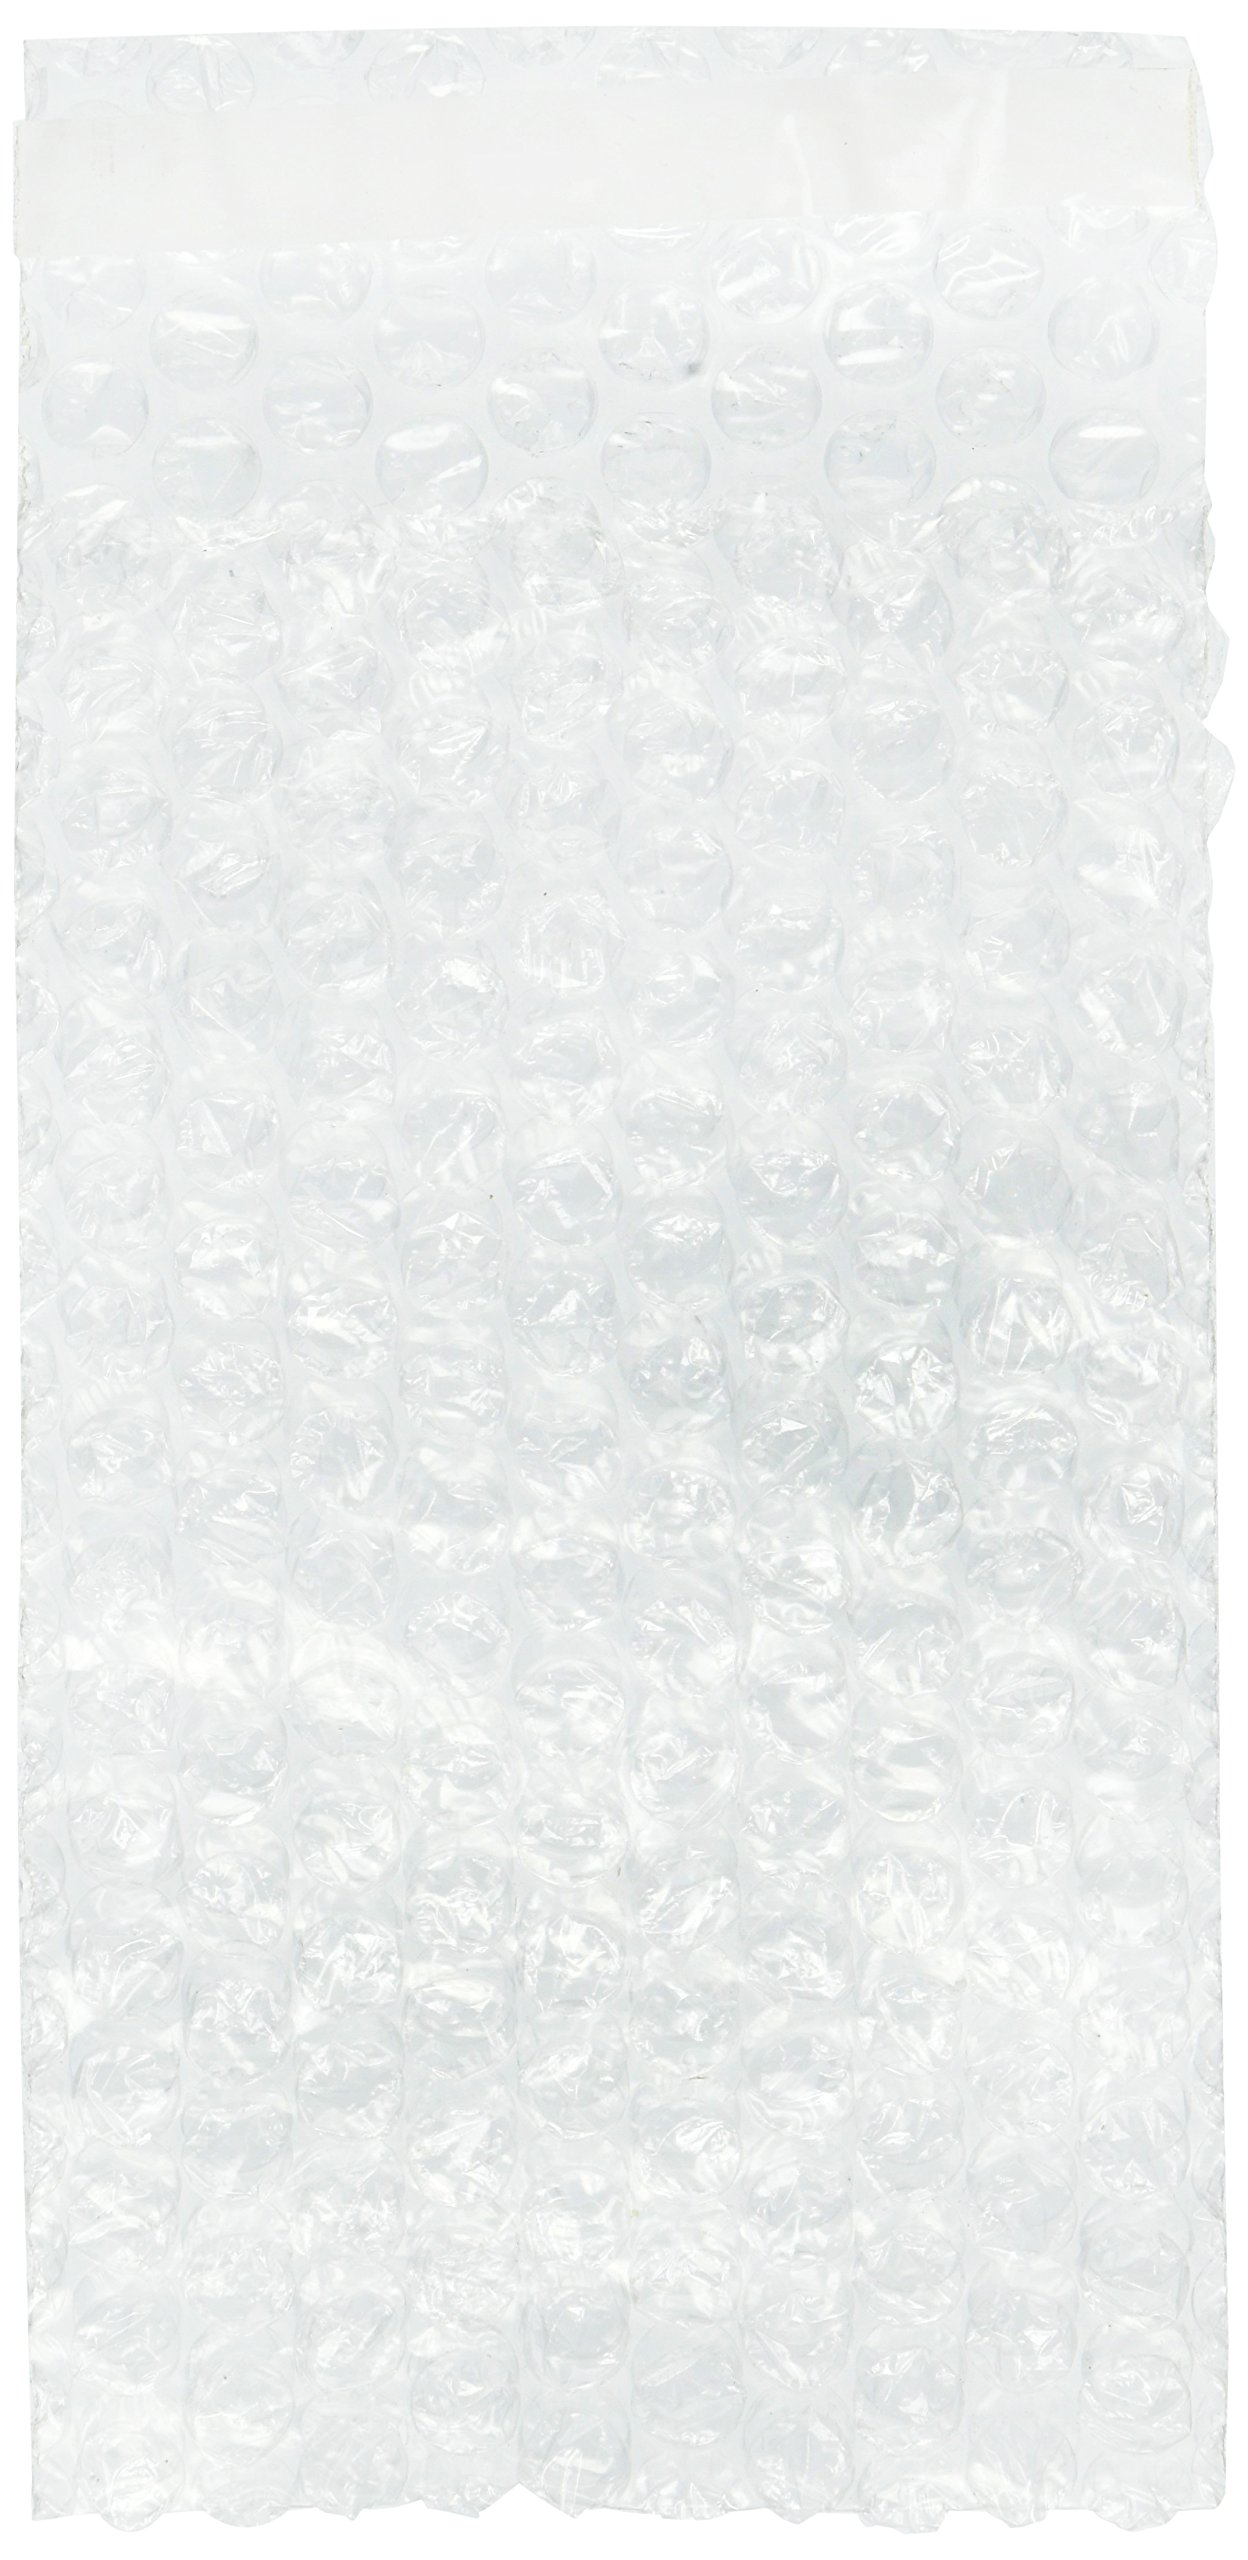 100 packs 4x7.5 SELF-SEAL CLEAR BUBBLE OUT POUCHES BAGS 3/16'' WRAP 4''x7.5''